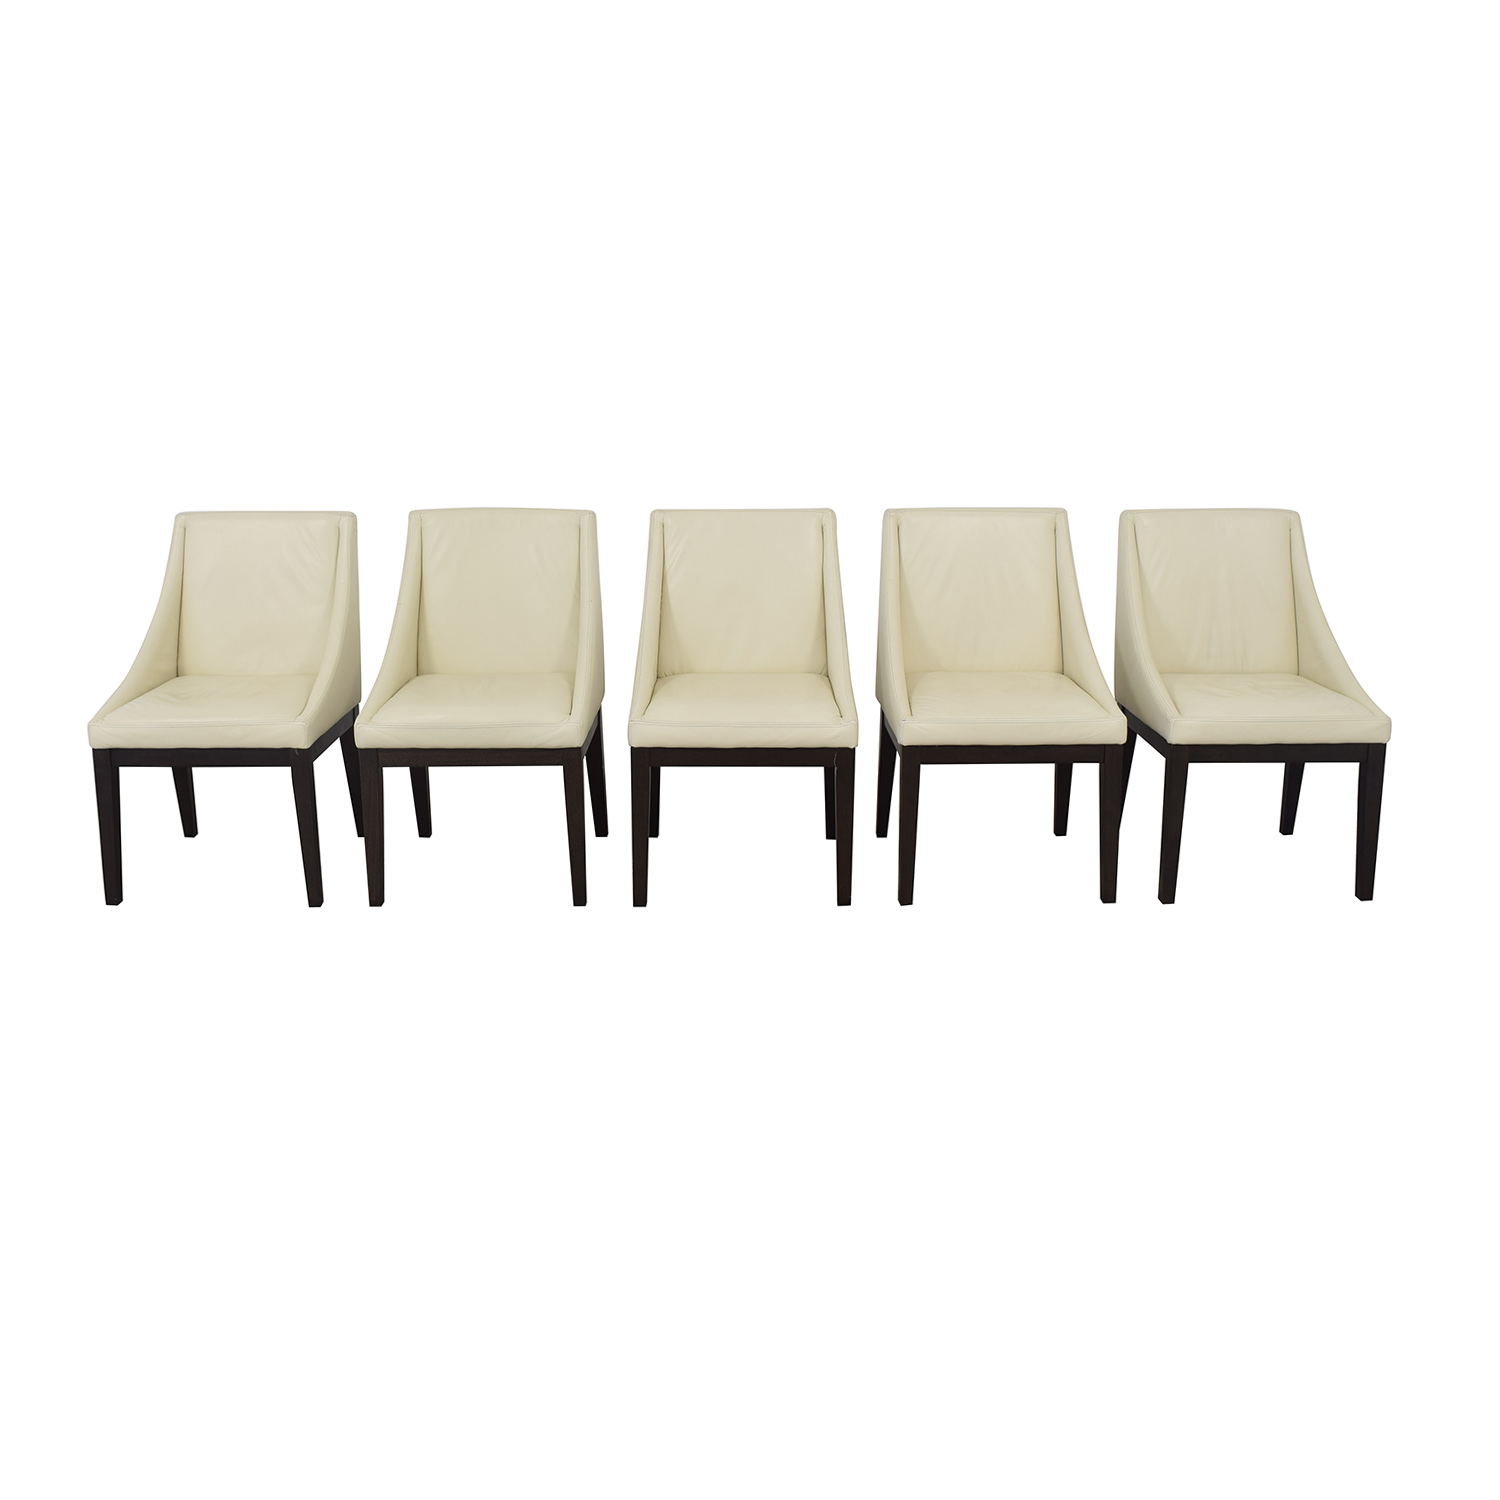 shop West Elm West Elm Curved Upholstered Chairs online